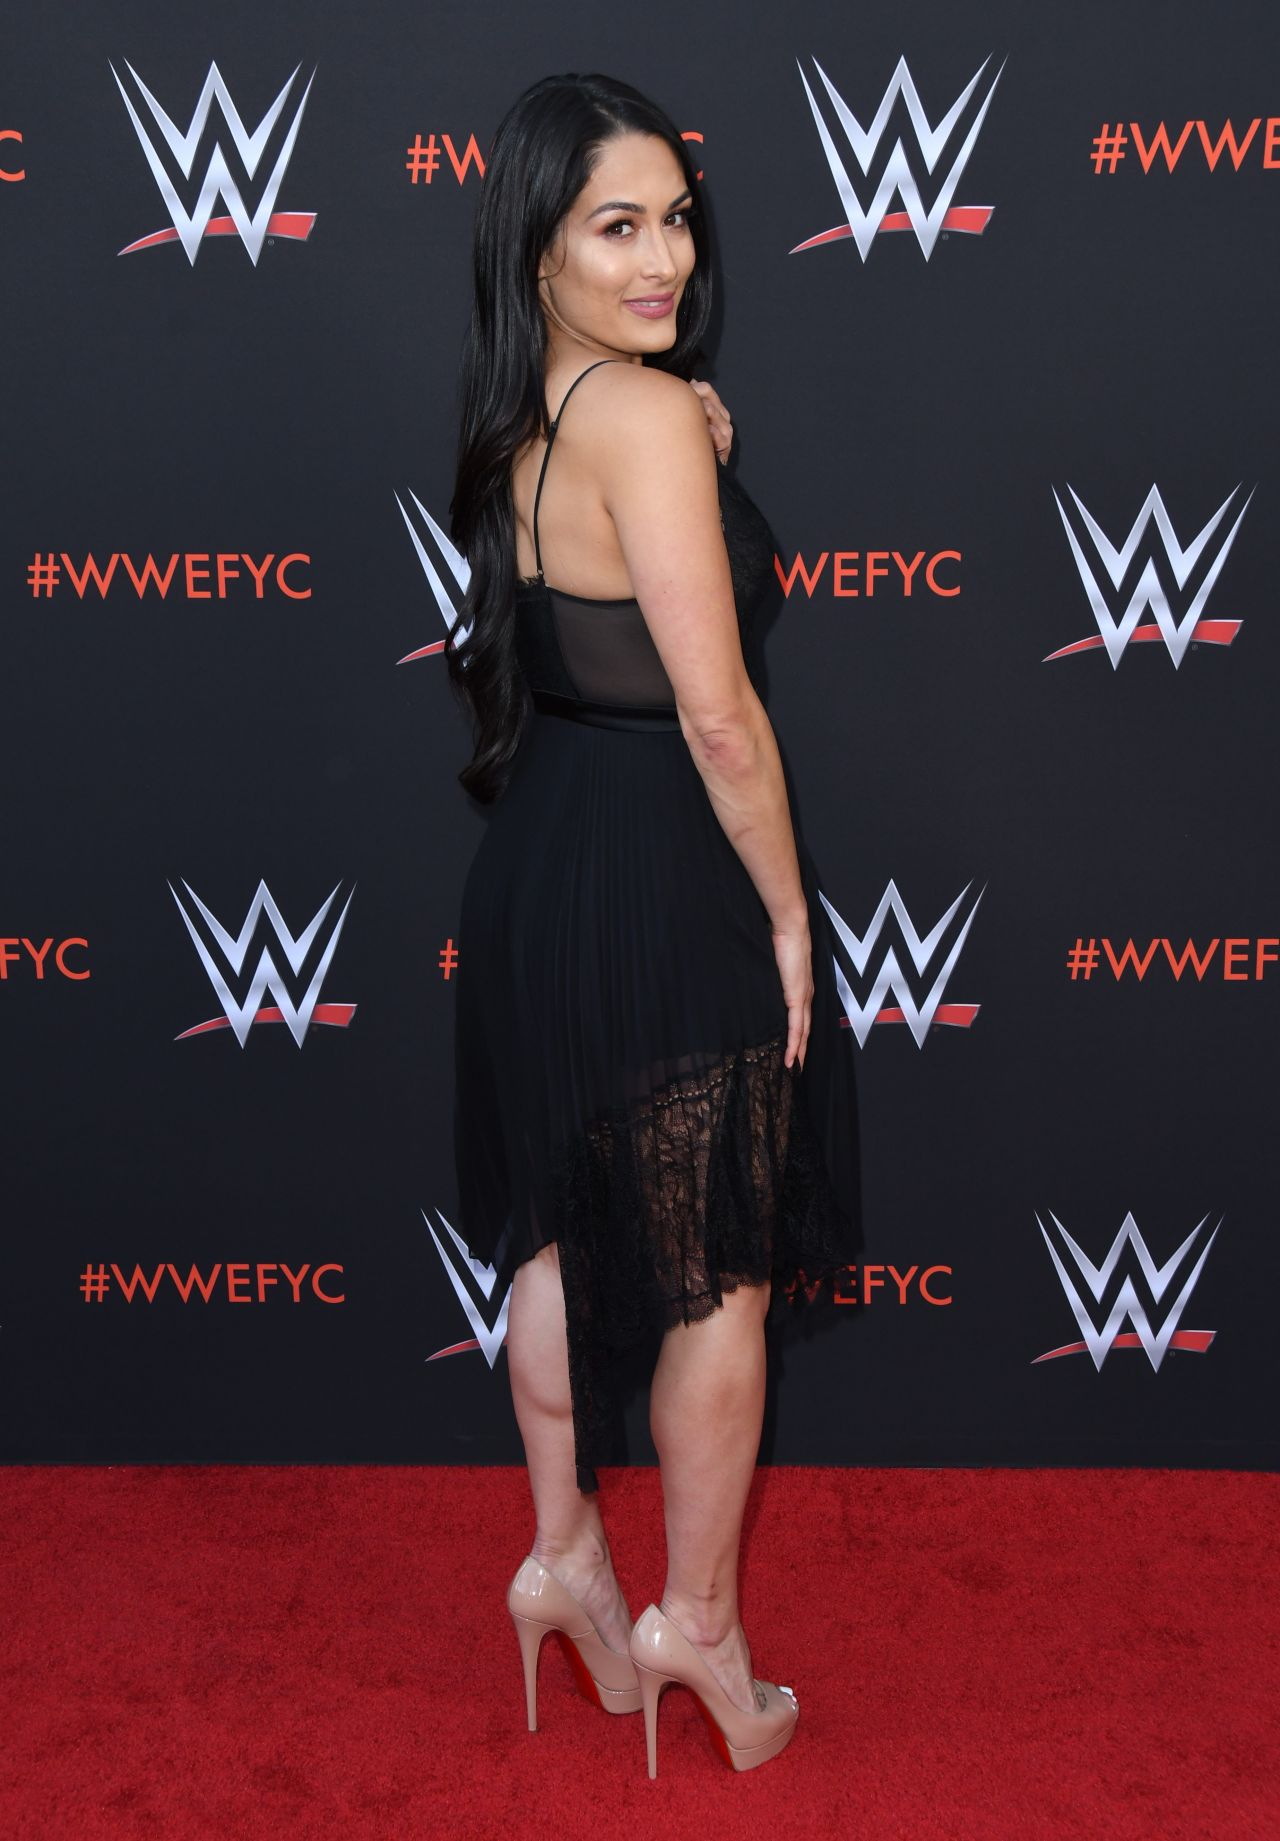 Brie Bella Wwe S First Ever Emmy Fyc Event In North